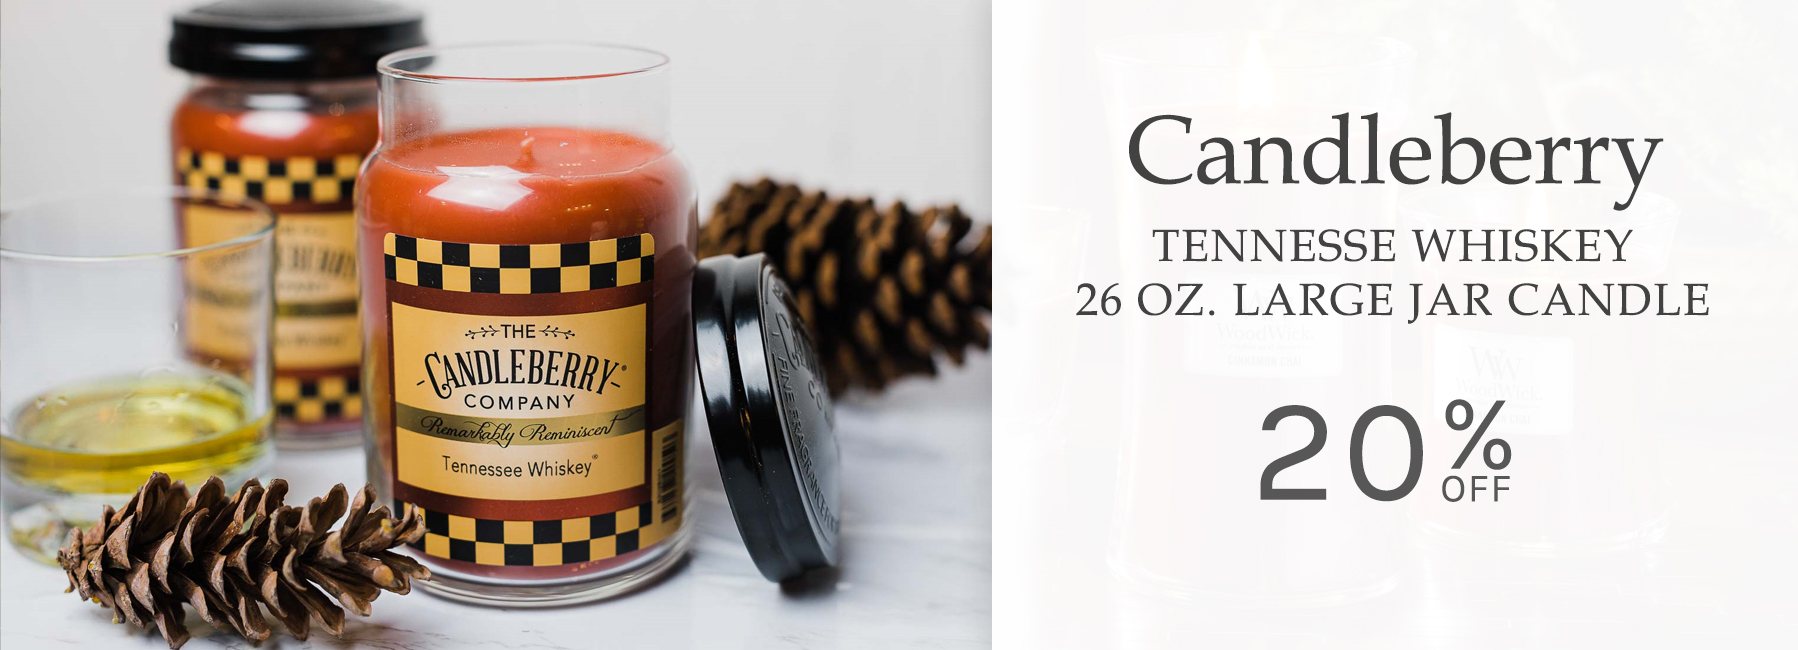 Candleberry - Tennessee Whiskey 26 Ounce Large Jar Candle - 20 Percent OFF